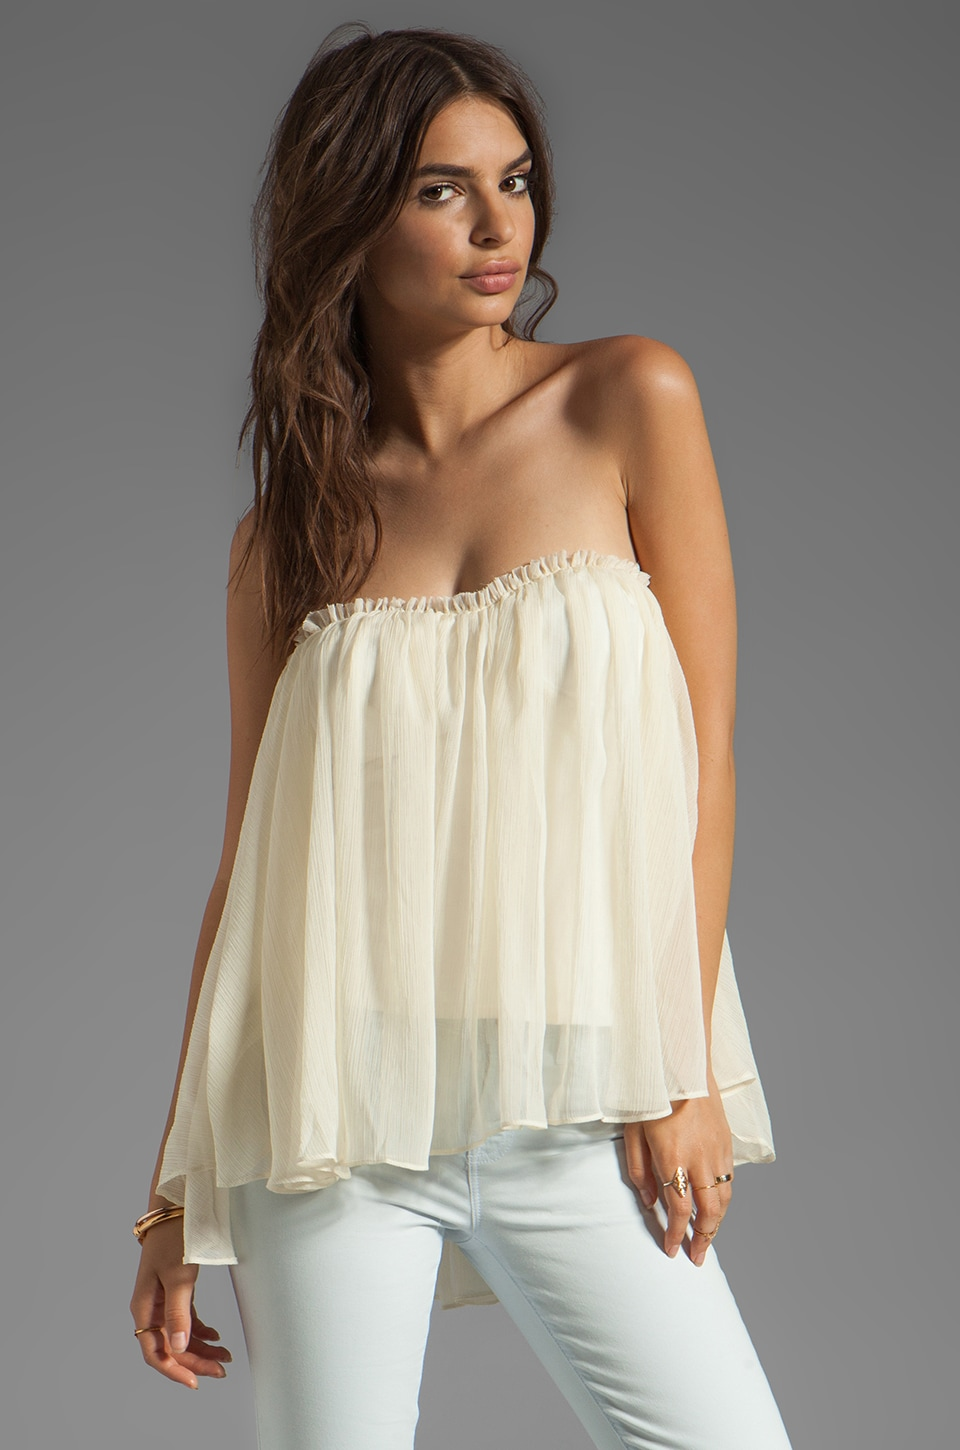 BLAQUE LABEL Strapless Ruffle Top in Ivory